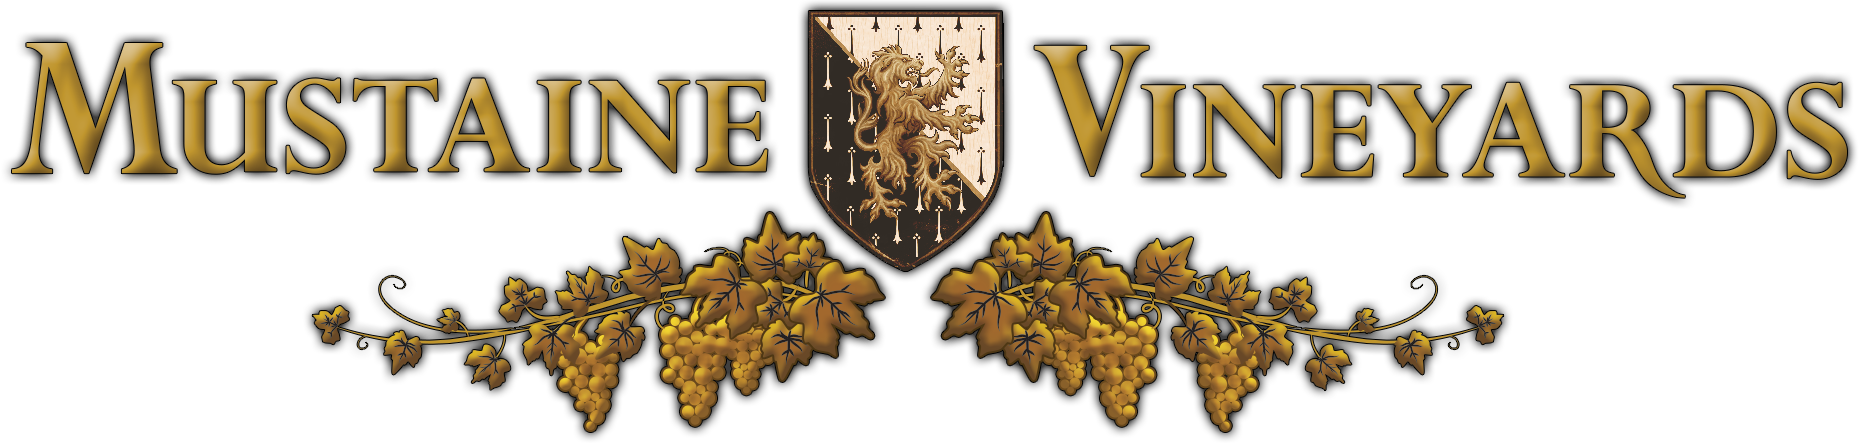 MustaineVineyards_Logo.png